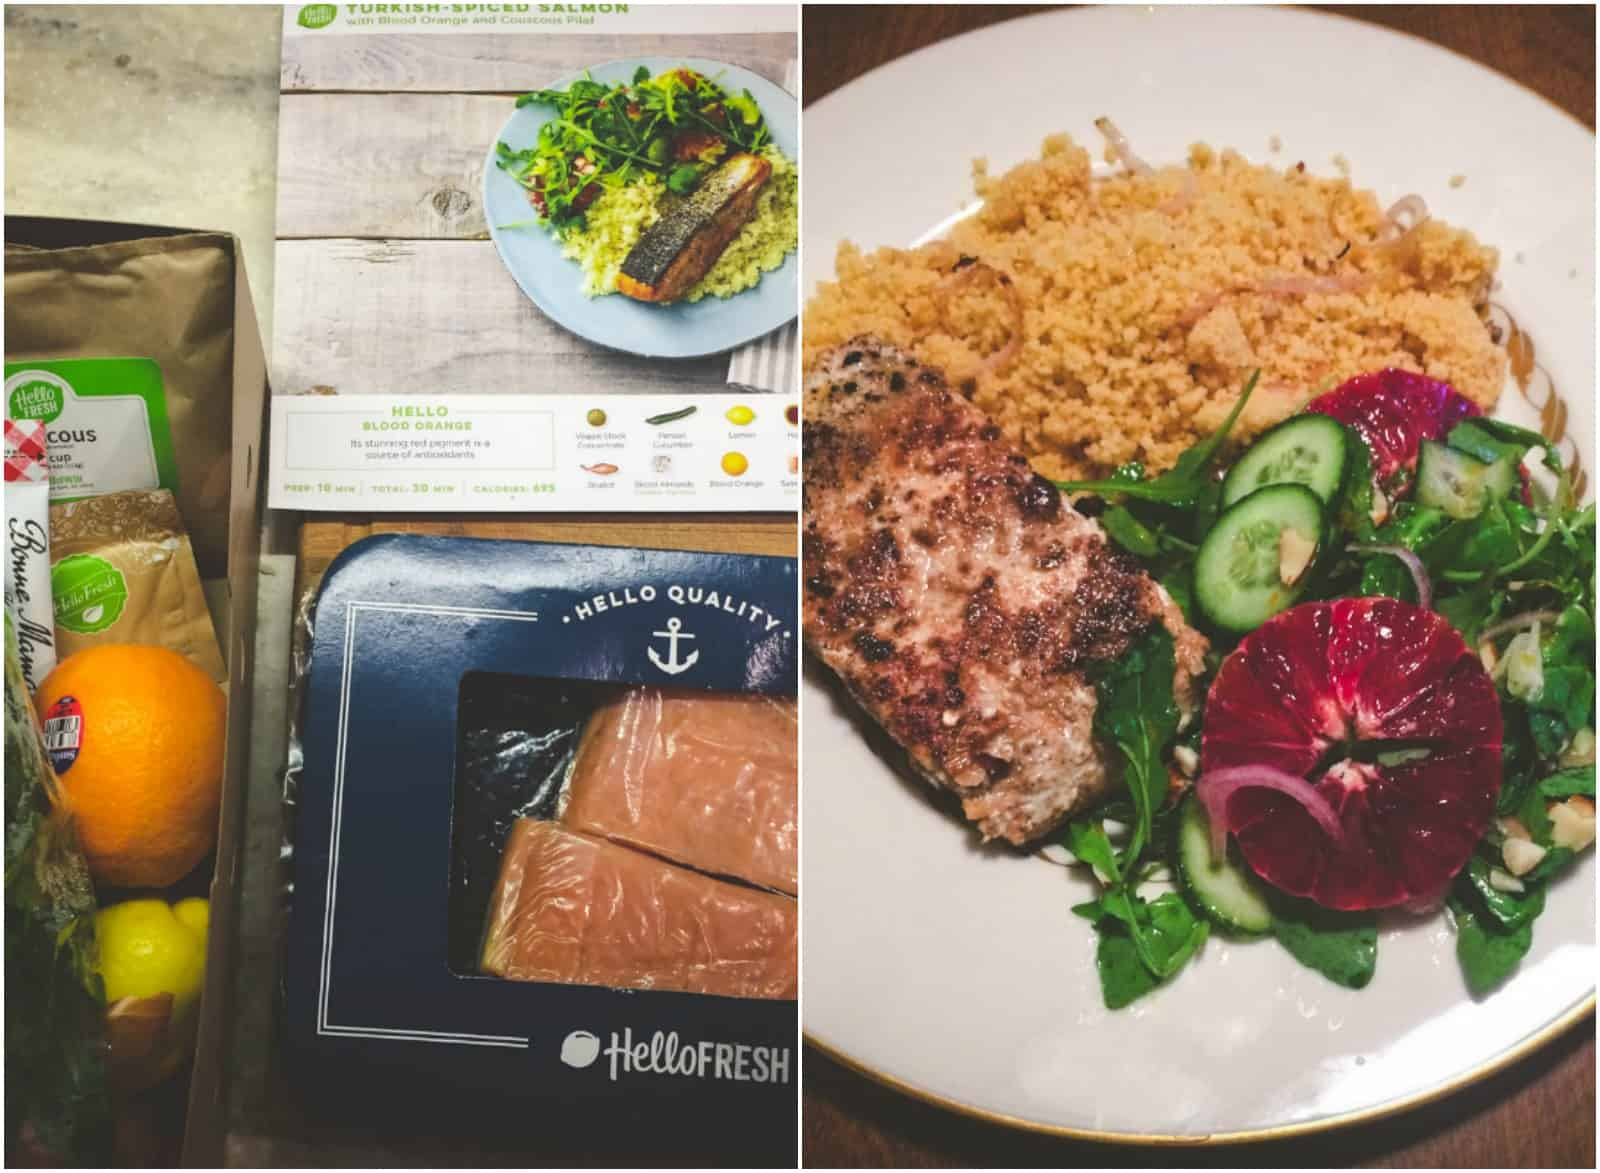 Buy Hellofresh Online Promotional Code April 2020